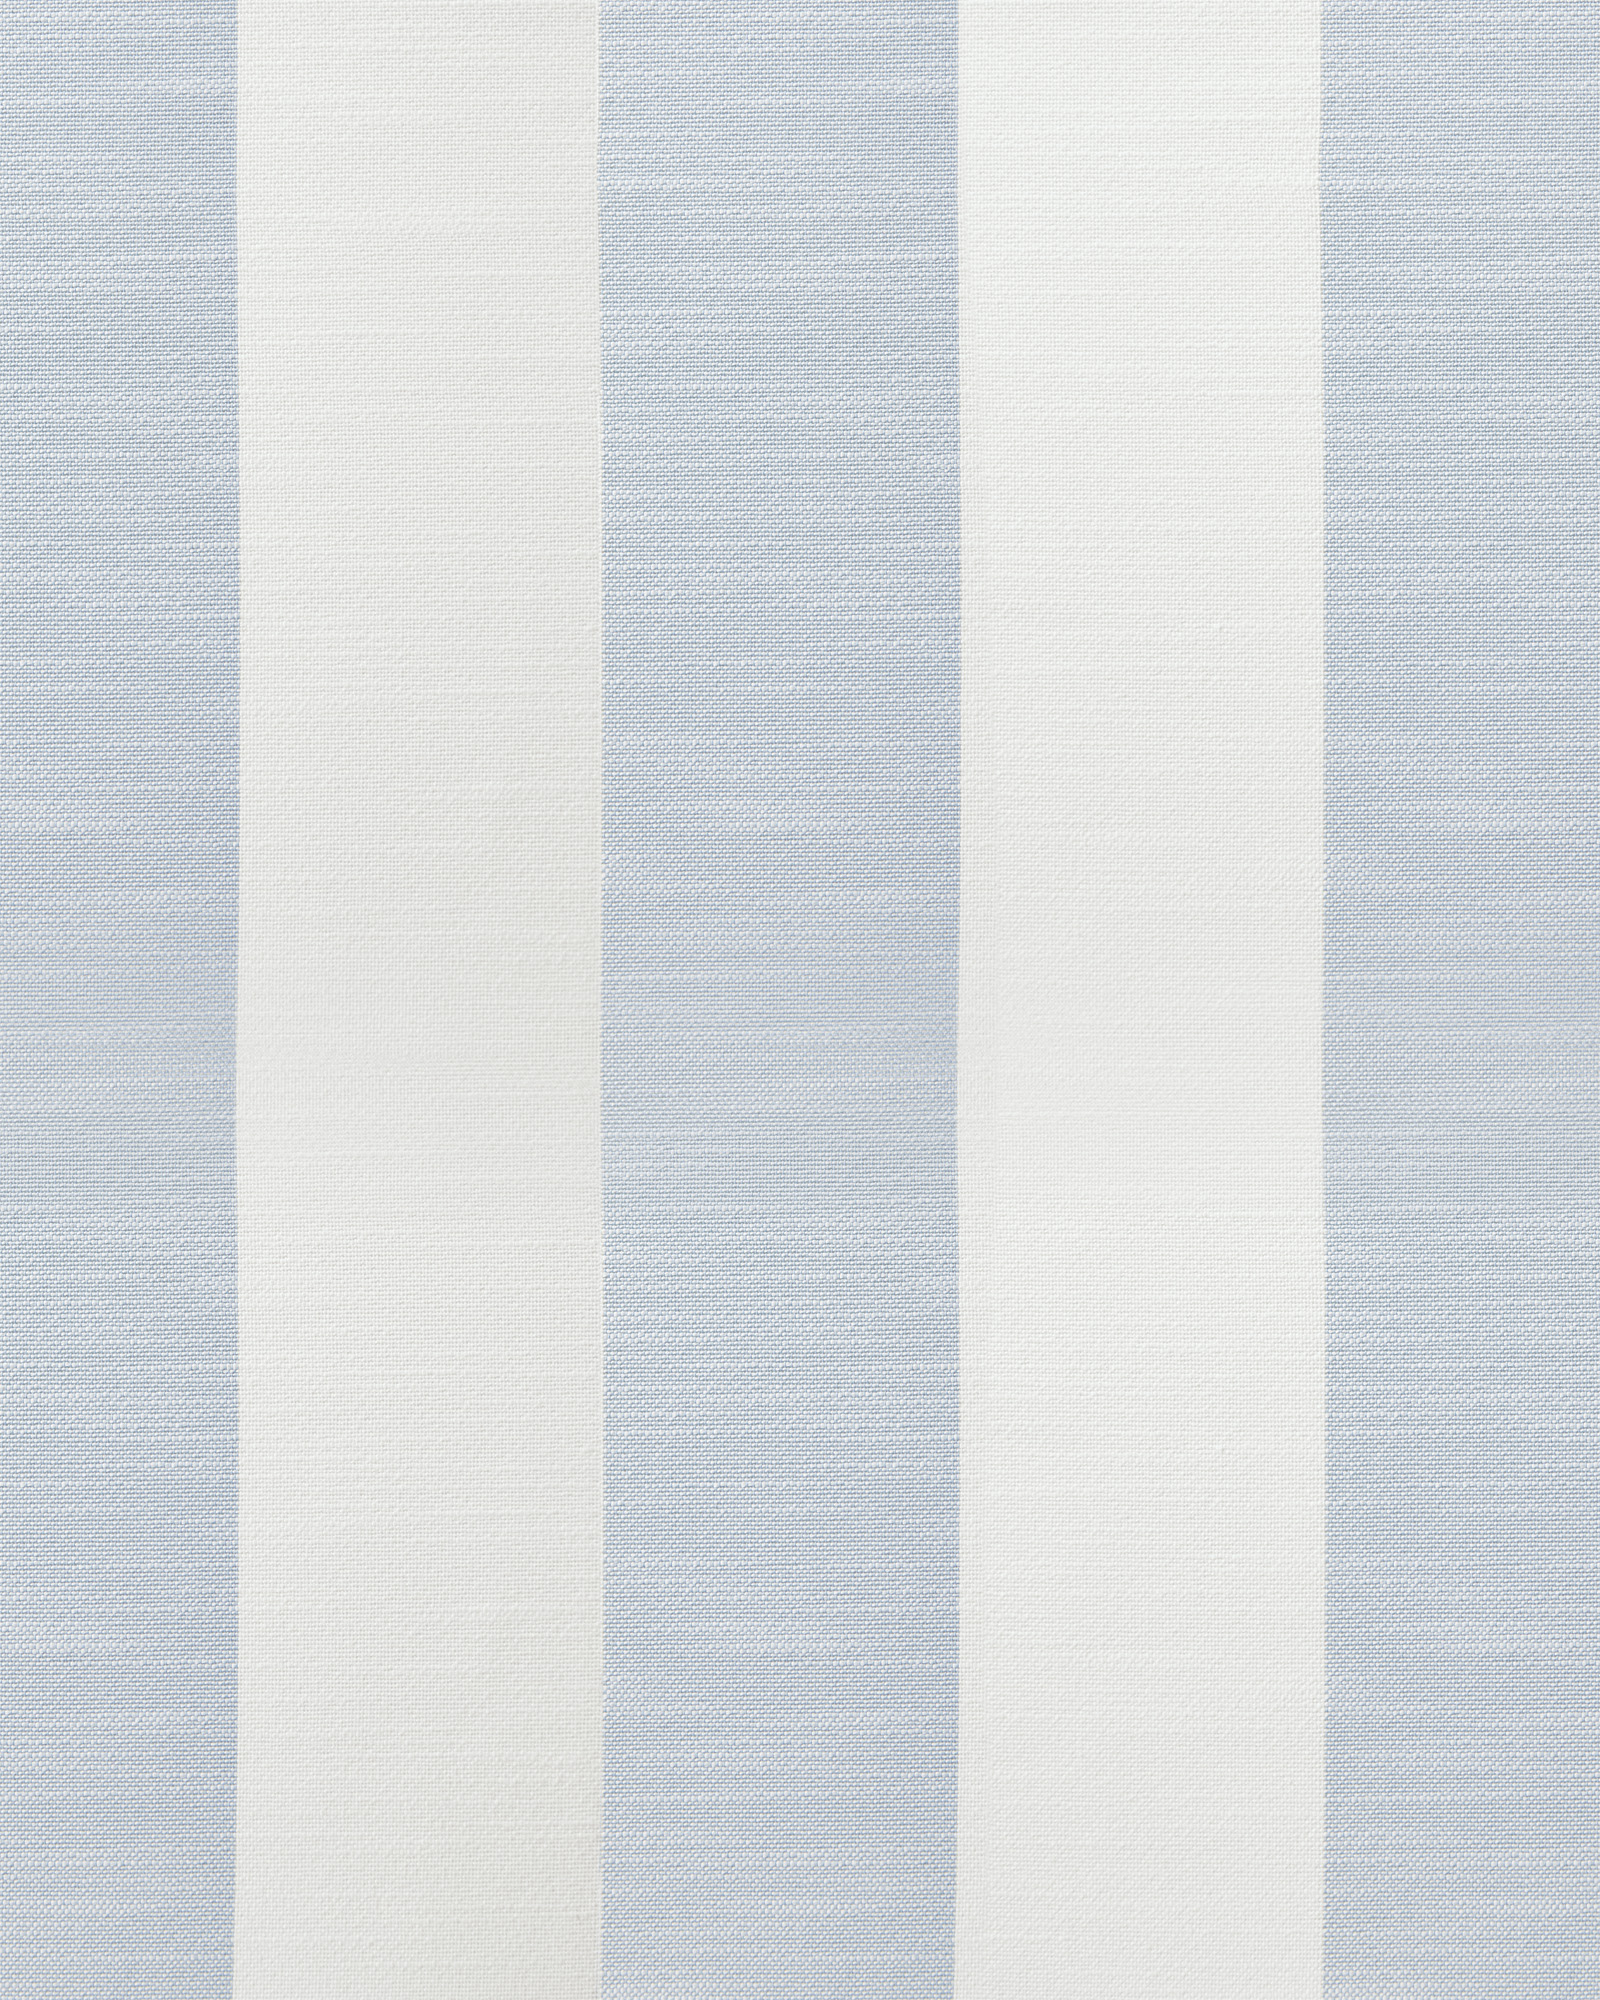 S&L Performance Beach Stripe - Coastal Blue,